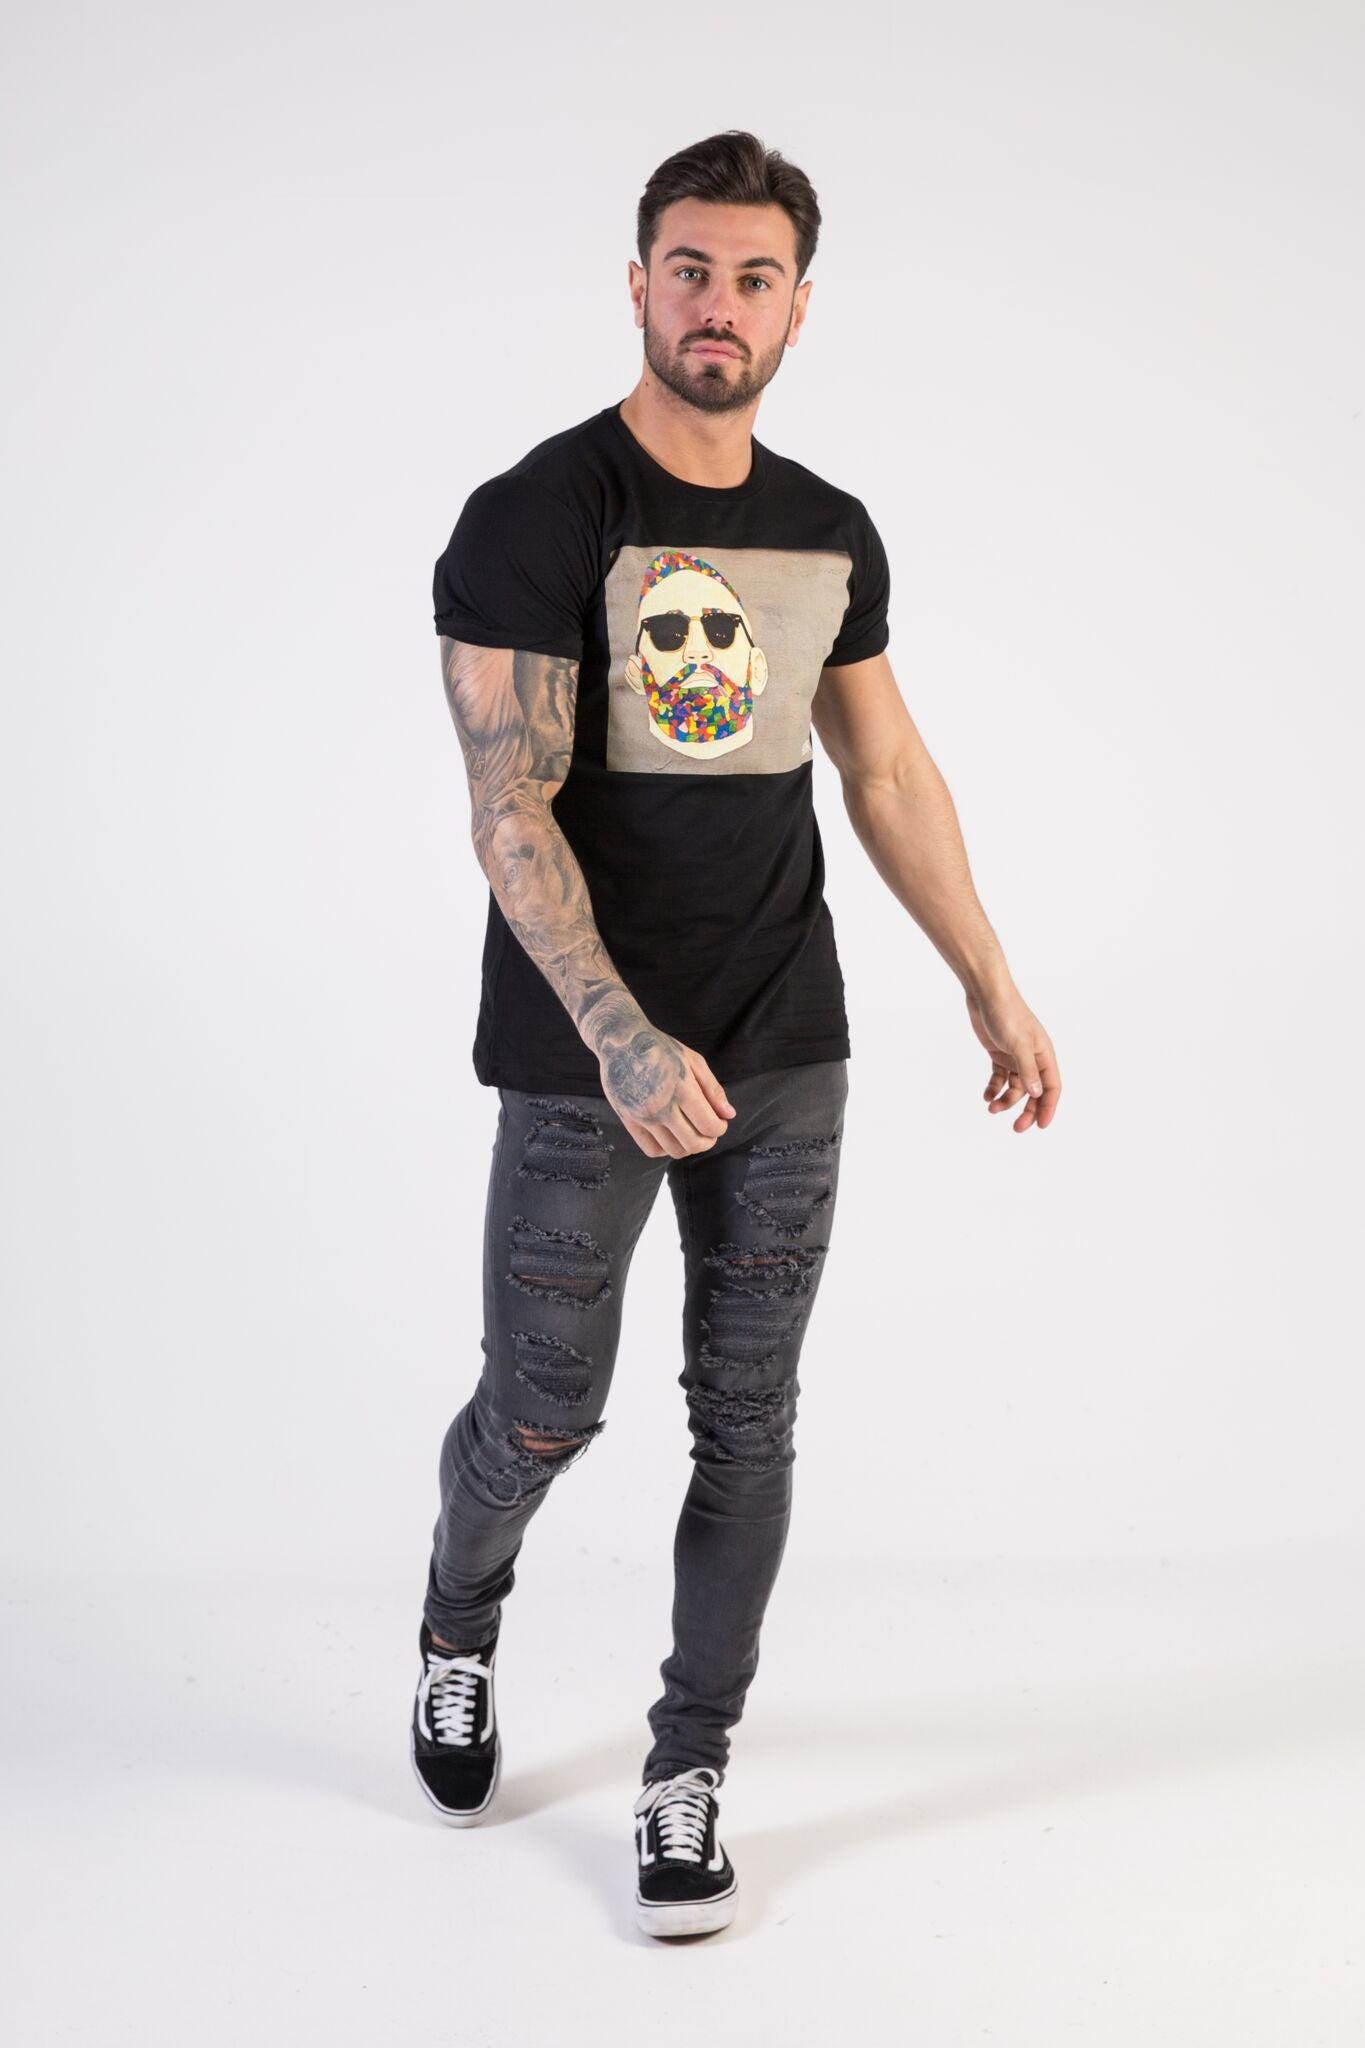 GRAFFITI SUNGLASSES Muscle Fit T-Shirt - HÖRFA is a men's global fashion brand that provides products such as Fashionable Watches, Wallets, Sunglasses, Belts, Beard and Male Grooming Products